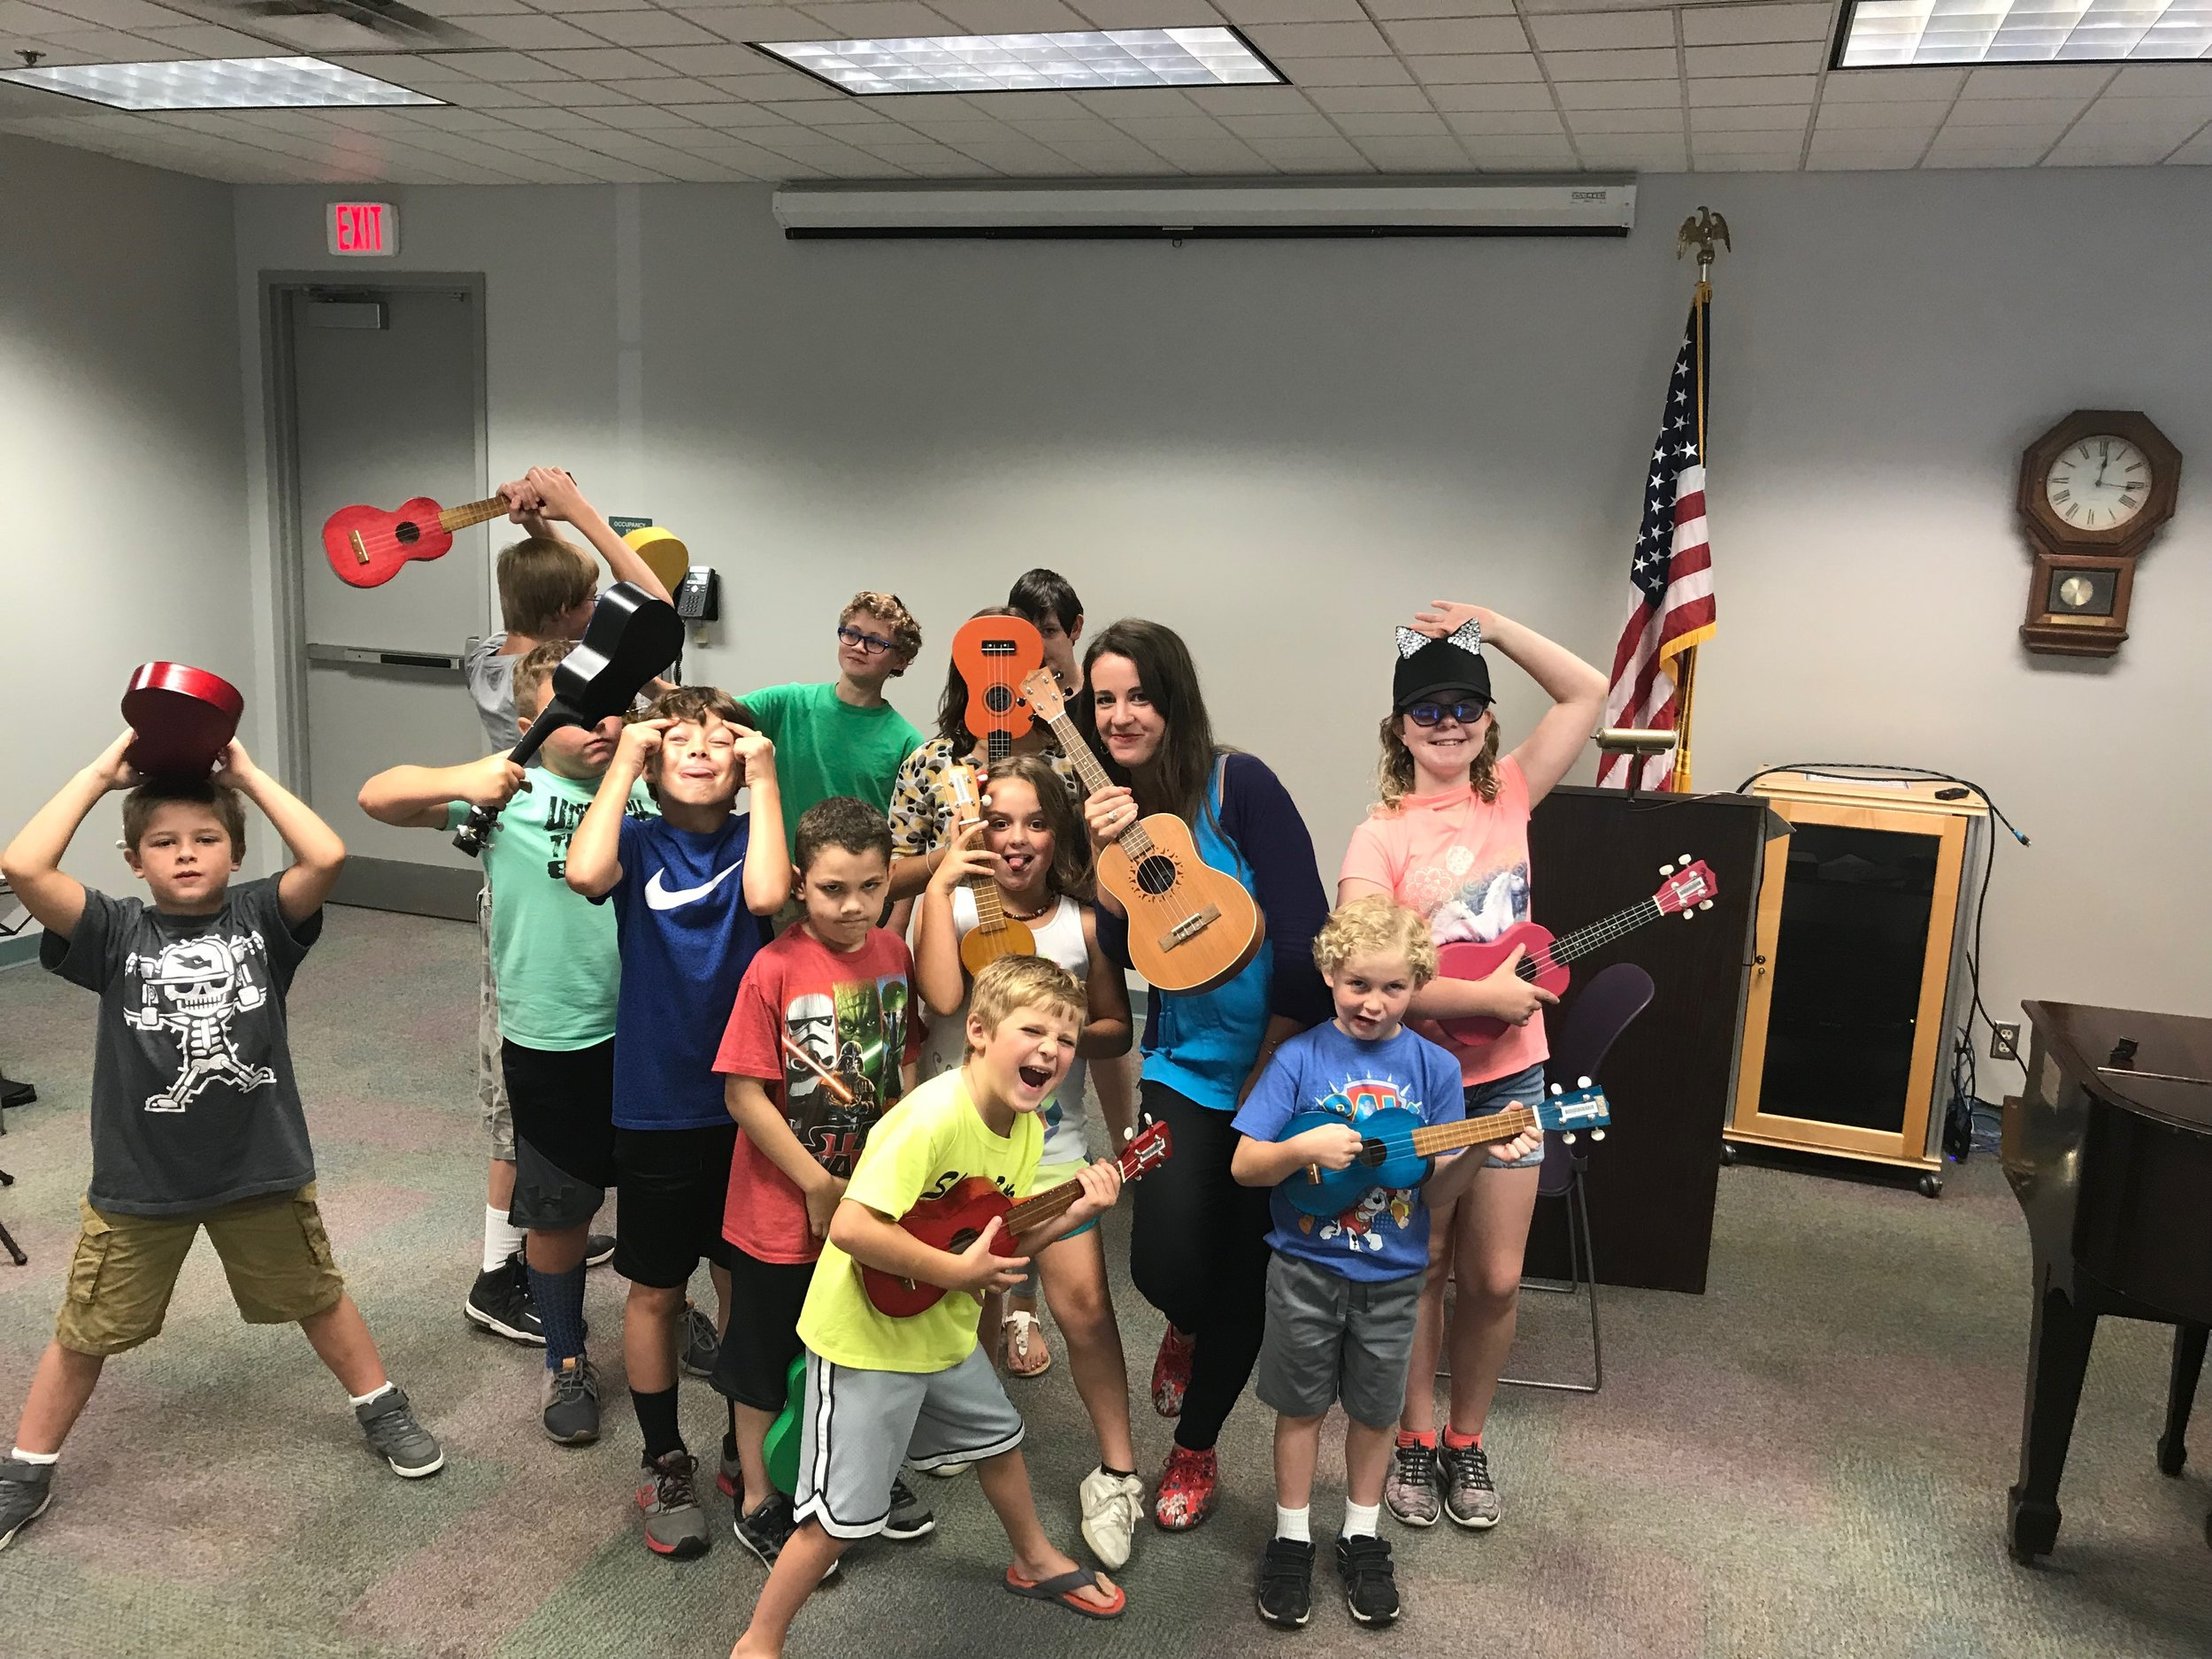 Ukulele Classes - We have a blast discovering ukulele songs that can be taught quickly. We always take a vote for our favorite songs that will be taught throughout the class.Beginner and Intermediate ukulele classes are offered.